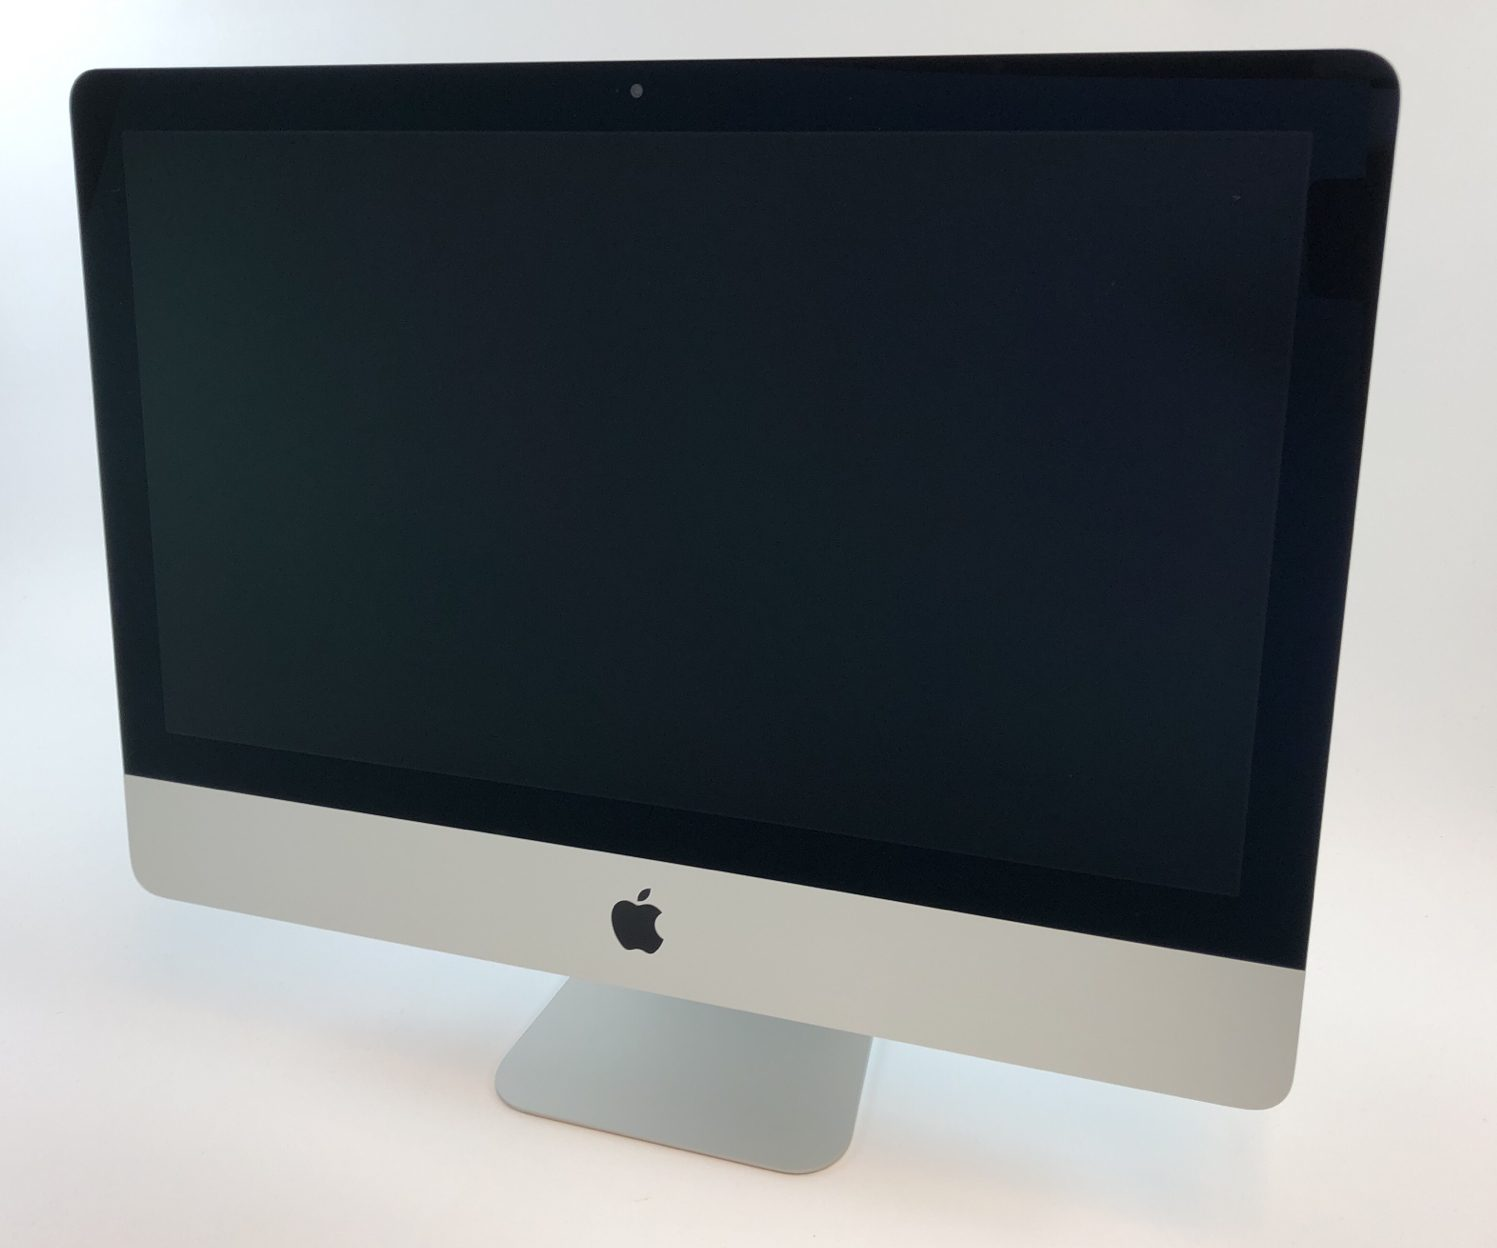 "iMac 21.5"" Late 2015 (Intel Core i5 1.6 GHz 8 GB RAM 1 TB HDD), Intel Core i5 1.6 GHz, 8 GB RAM, 1 TB HDD, image 1"